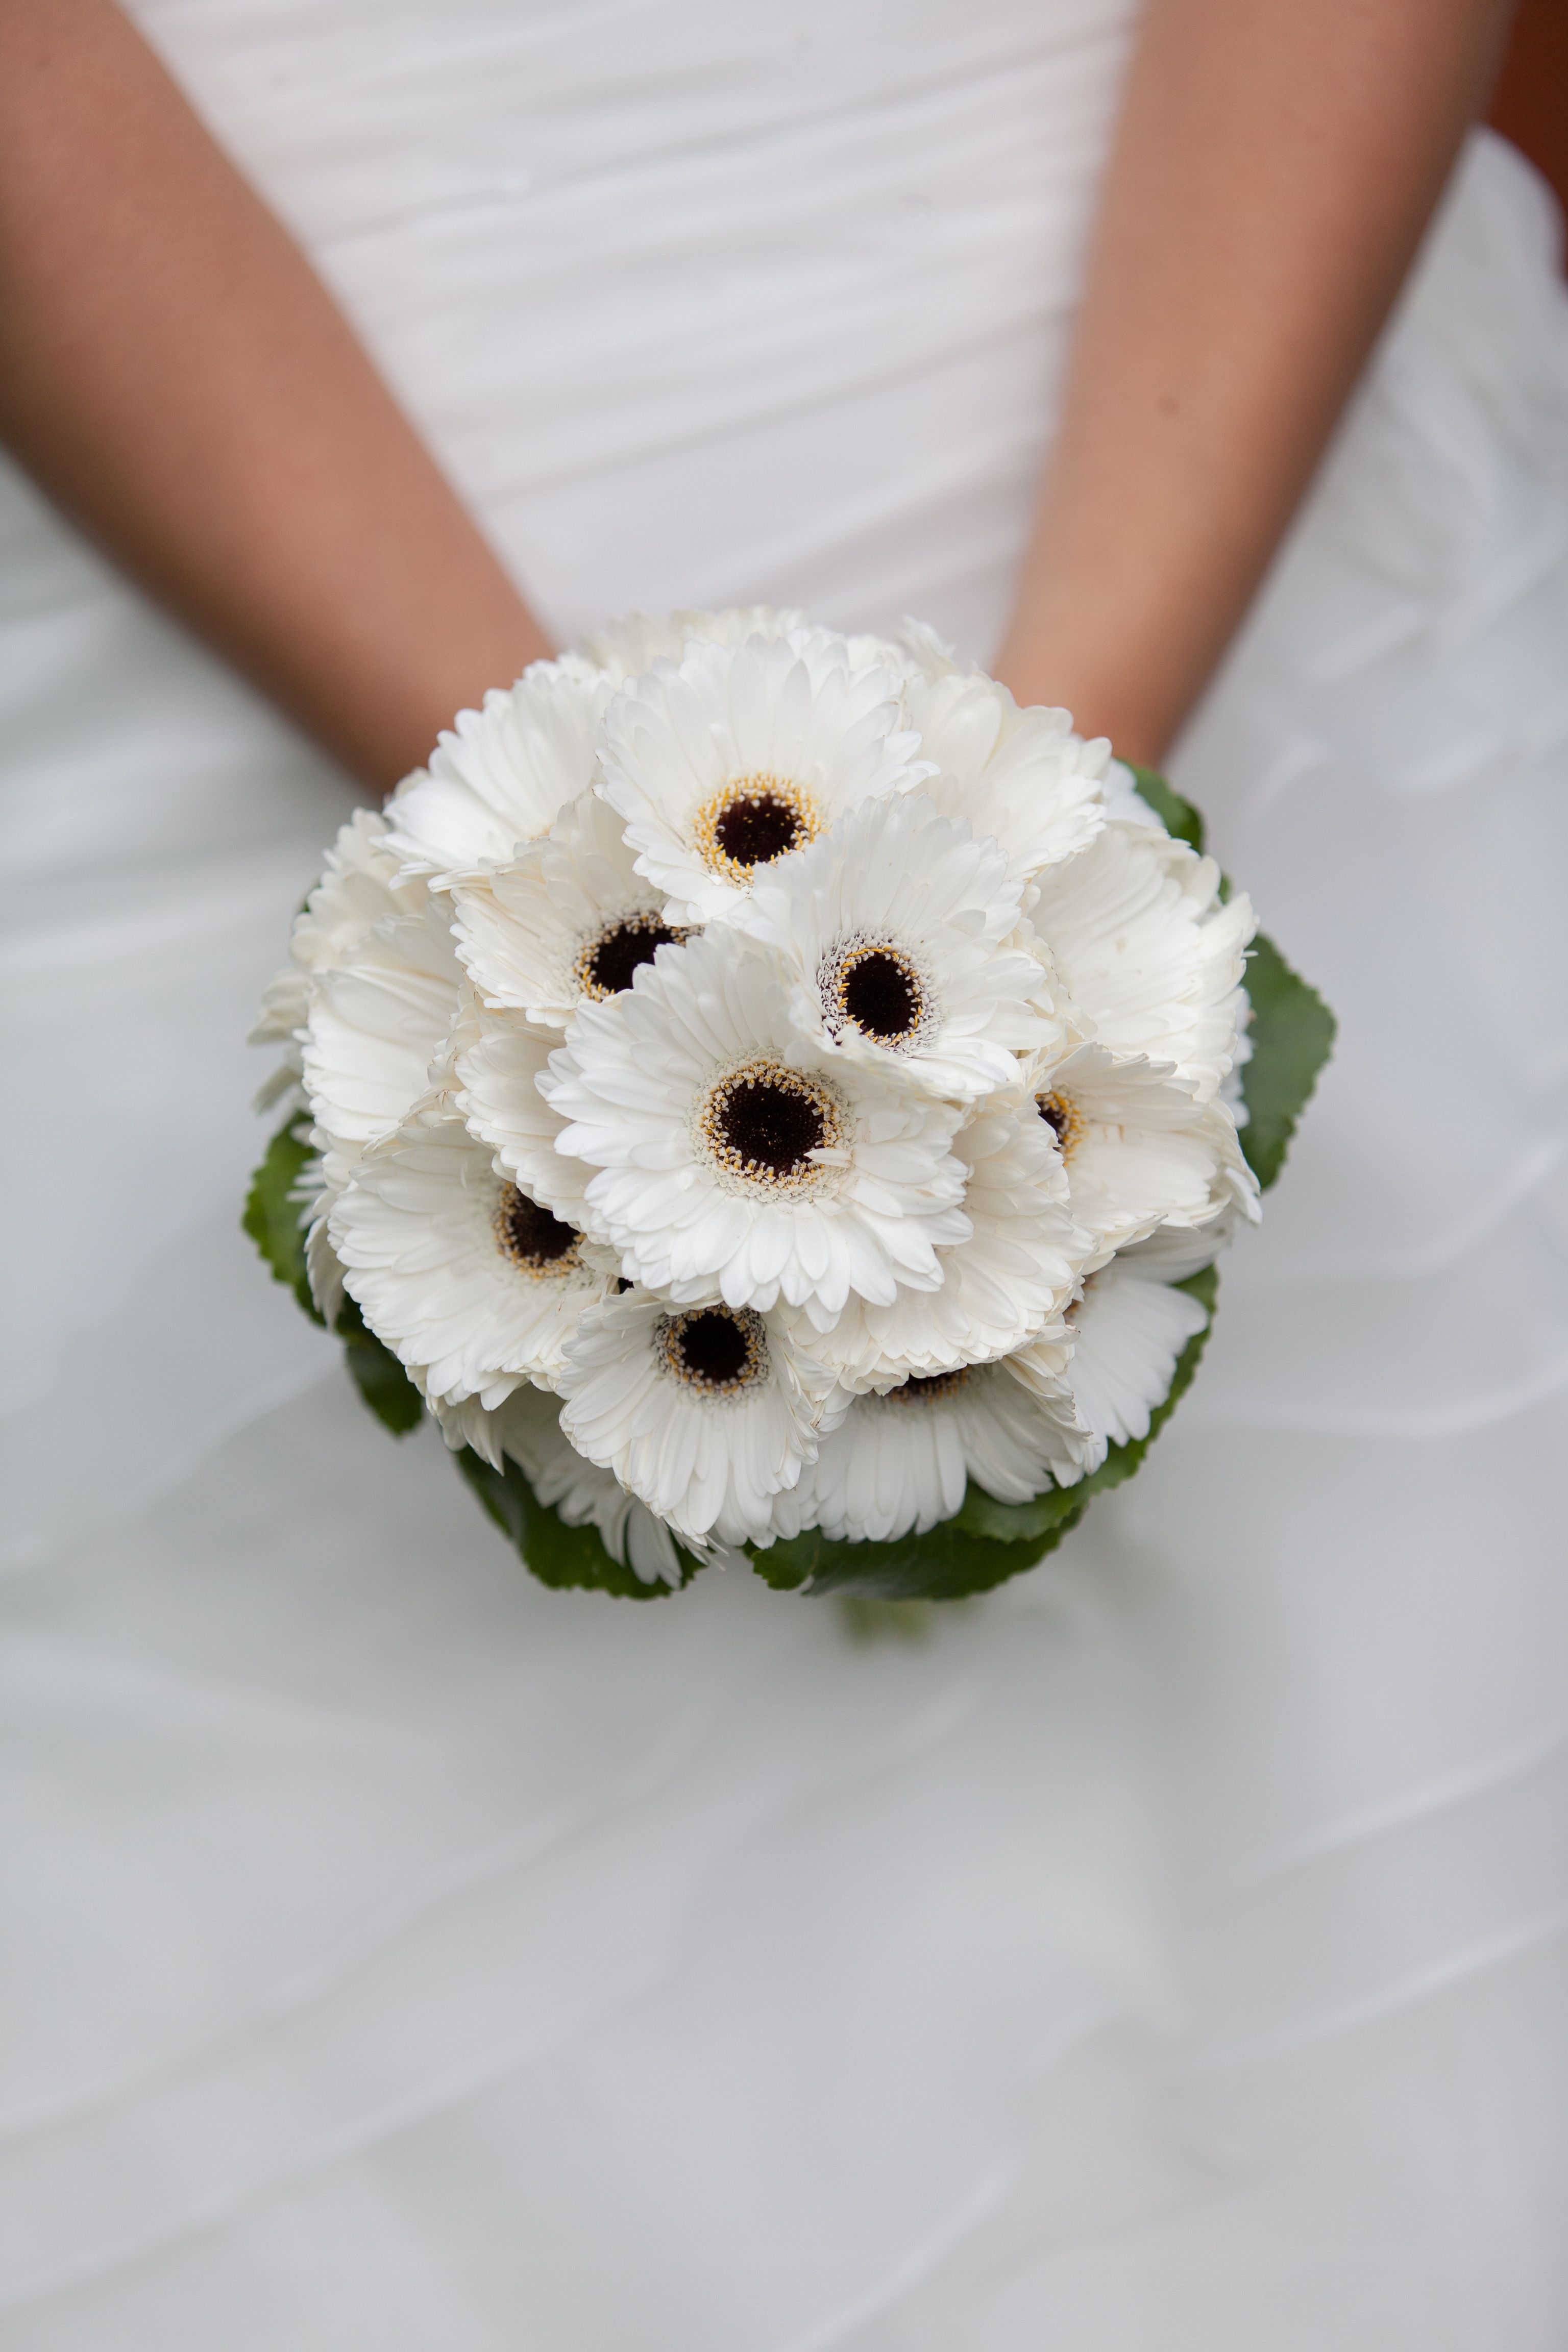 Pin By Hope Blooms Flowers And Things On Flowers Wedding Petals White Gerber Daisy Bouquet Gerbera Wedding